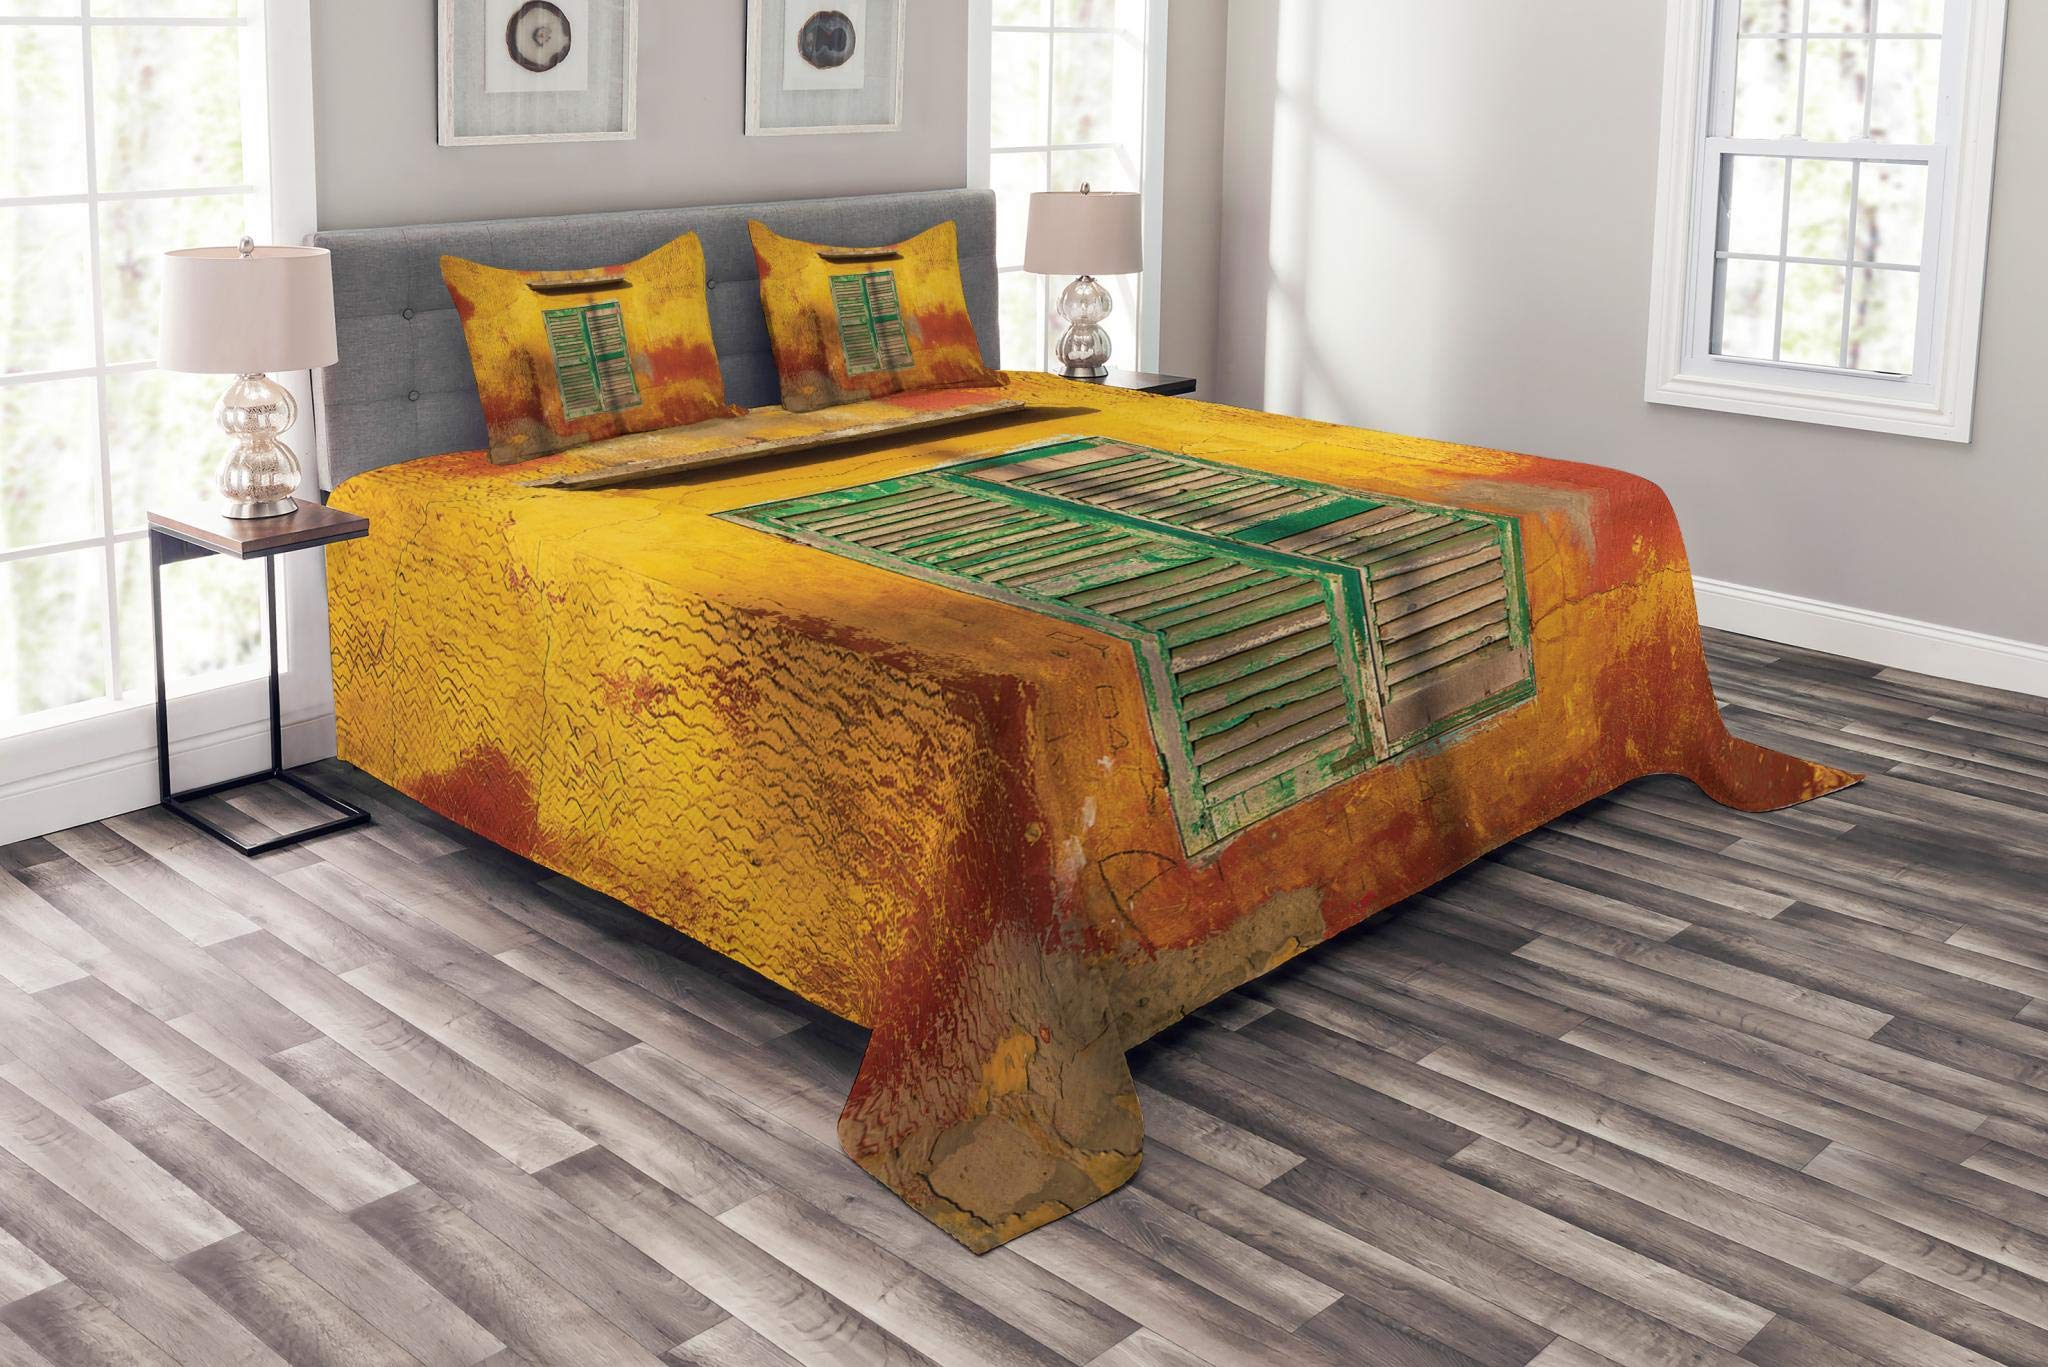 Lunarable Shutters Bedspread Set King Size, Wooden Window and Old Vintage Orange House in Saint Louis Senegal Classic Home, Decorative Quilted 3 Piece Coverlet Set with 2 Pillow Shams, Mustard Green